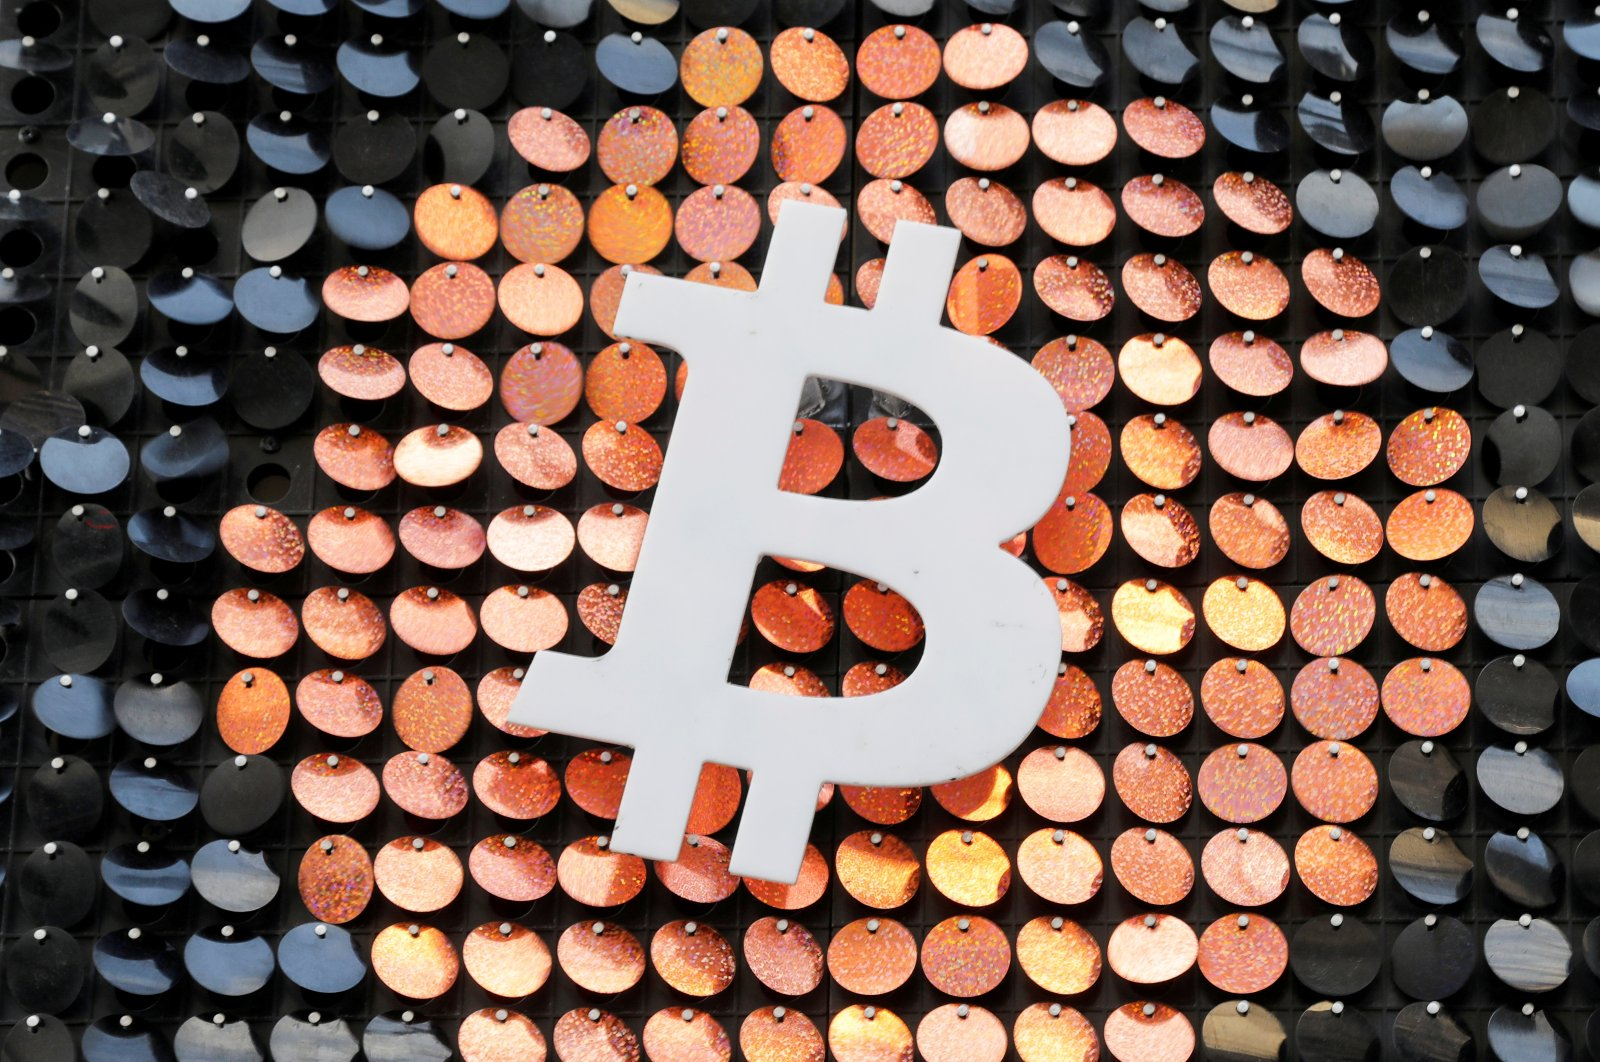 The Bitcoin digital currency logo at a shop in Marseille, France, Feb. 7, 2021. (Reuters Photo)